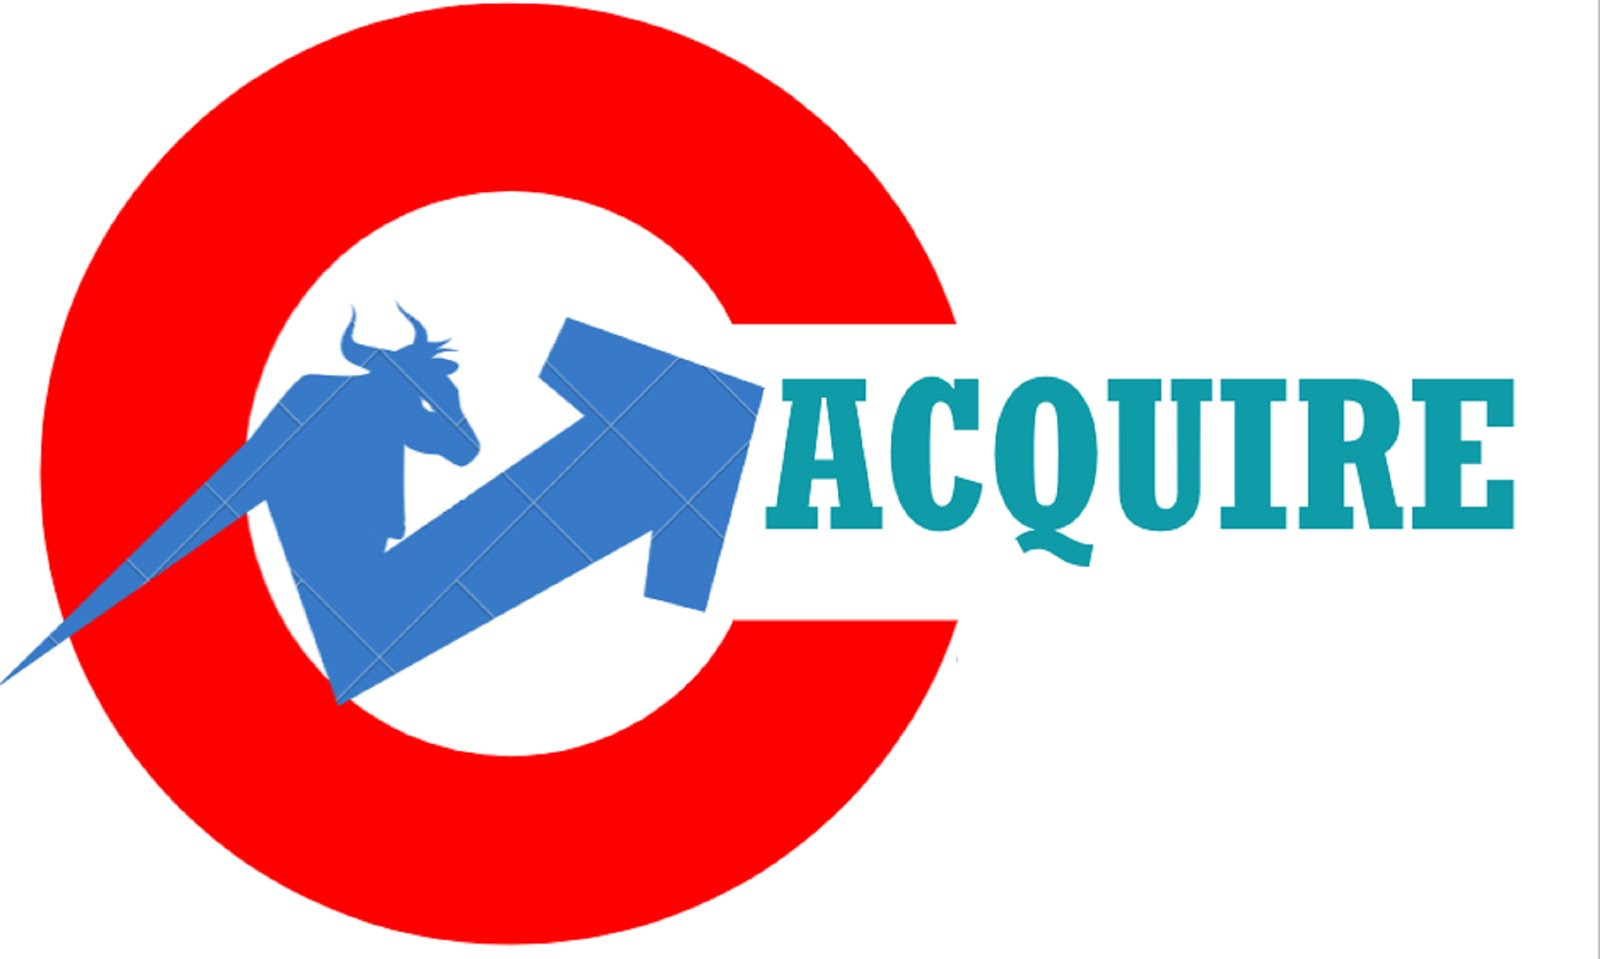 Capital Acquire